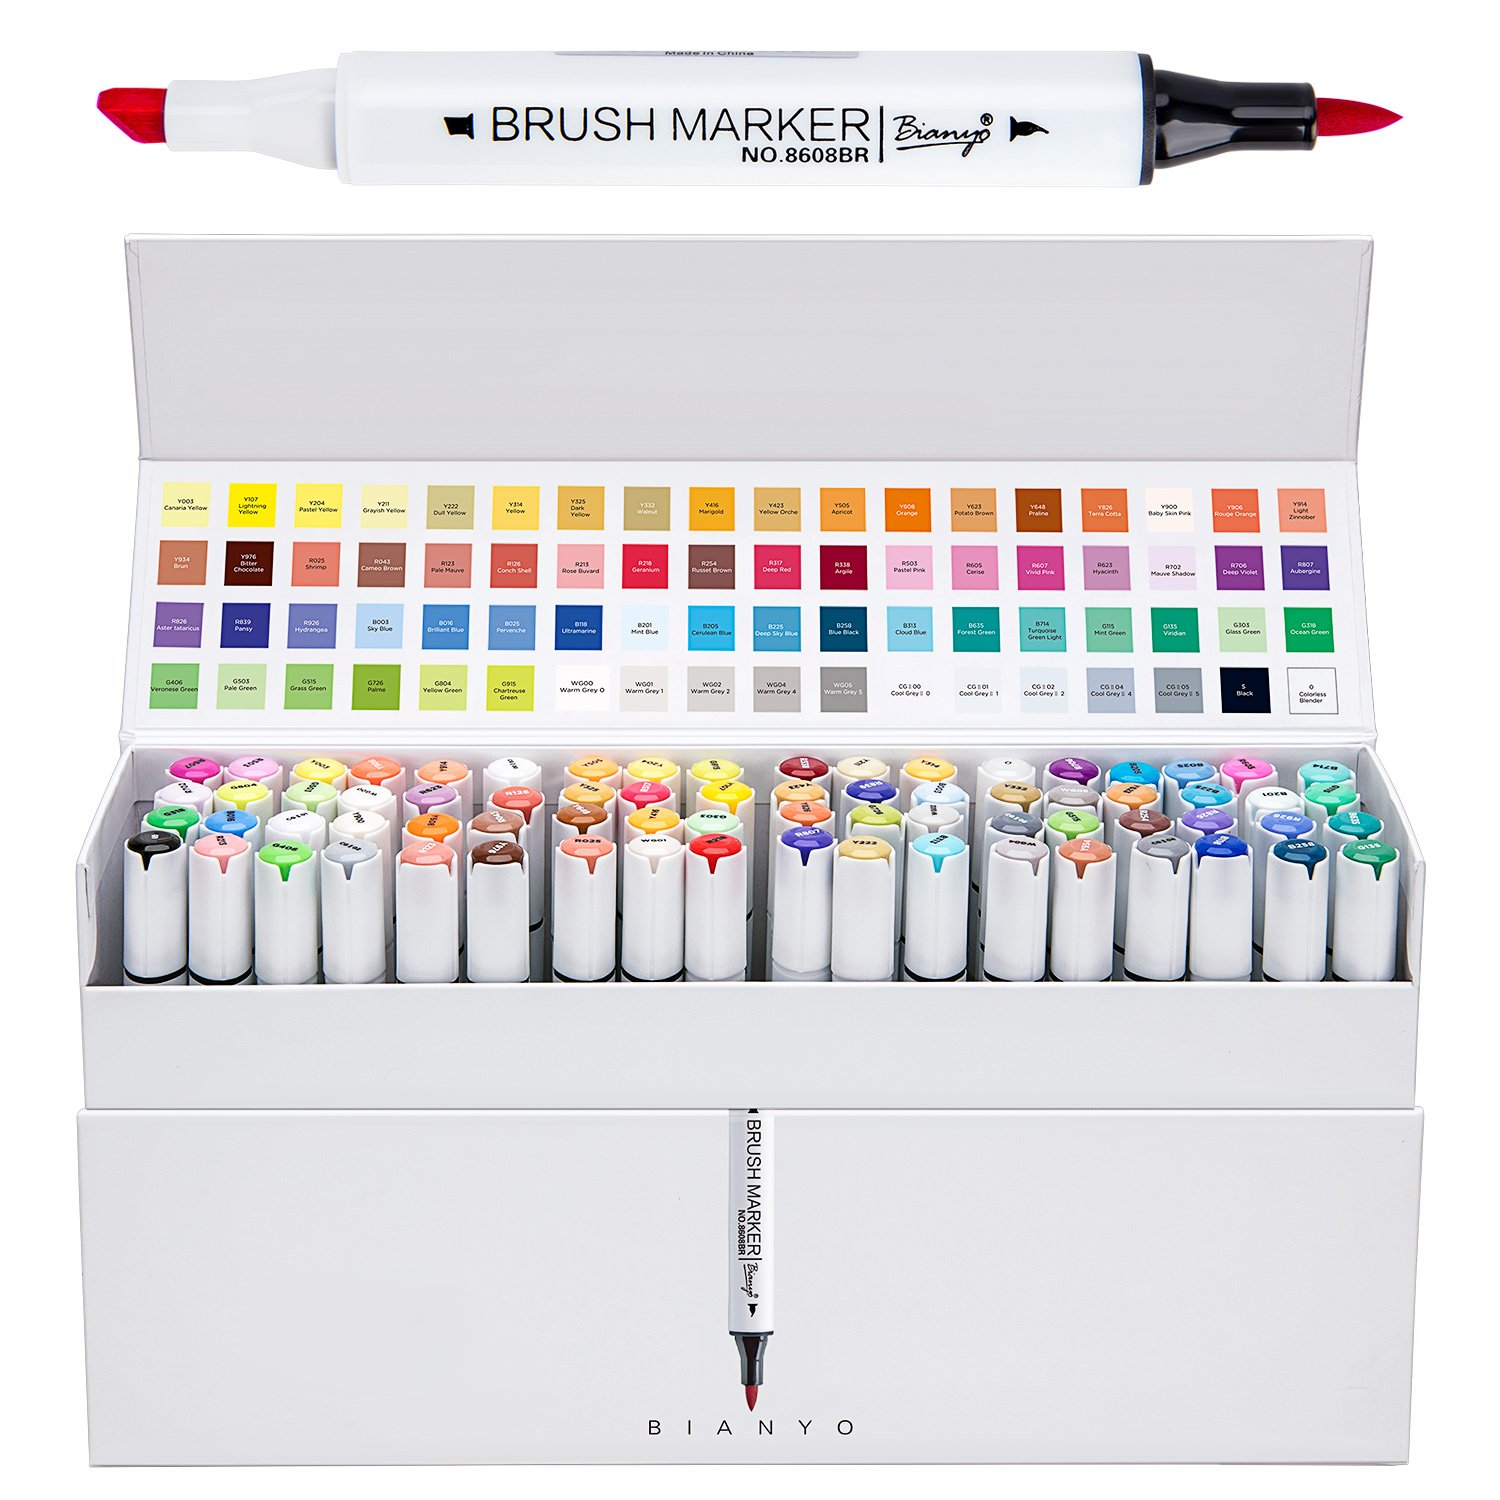 Bianyo Professional Series  Alcohol-Based Dual Tip Brush Markers Set (Set of 72,Display Box) by Bianyo (Image #1)